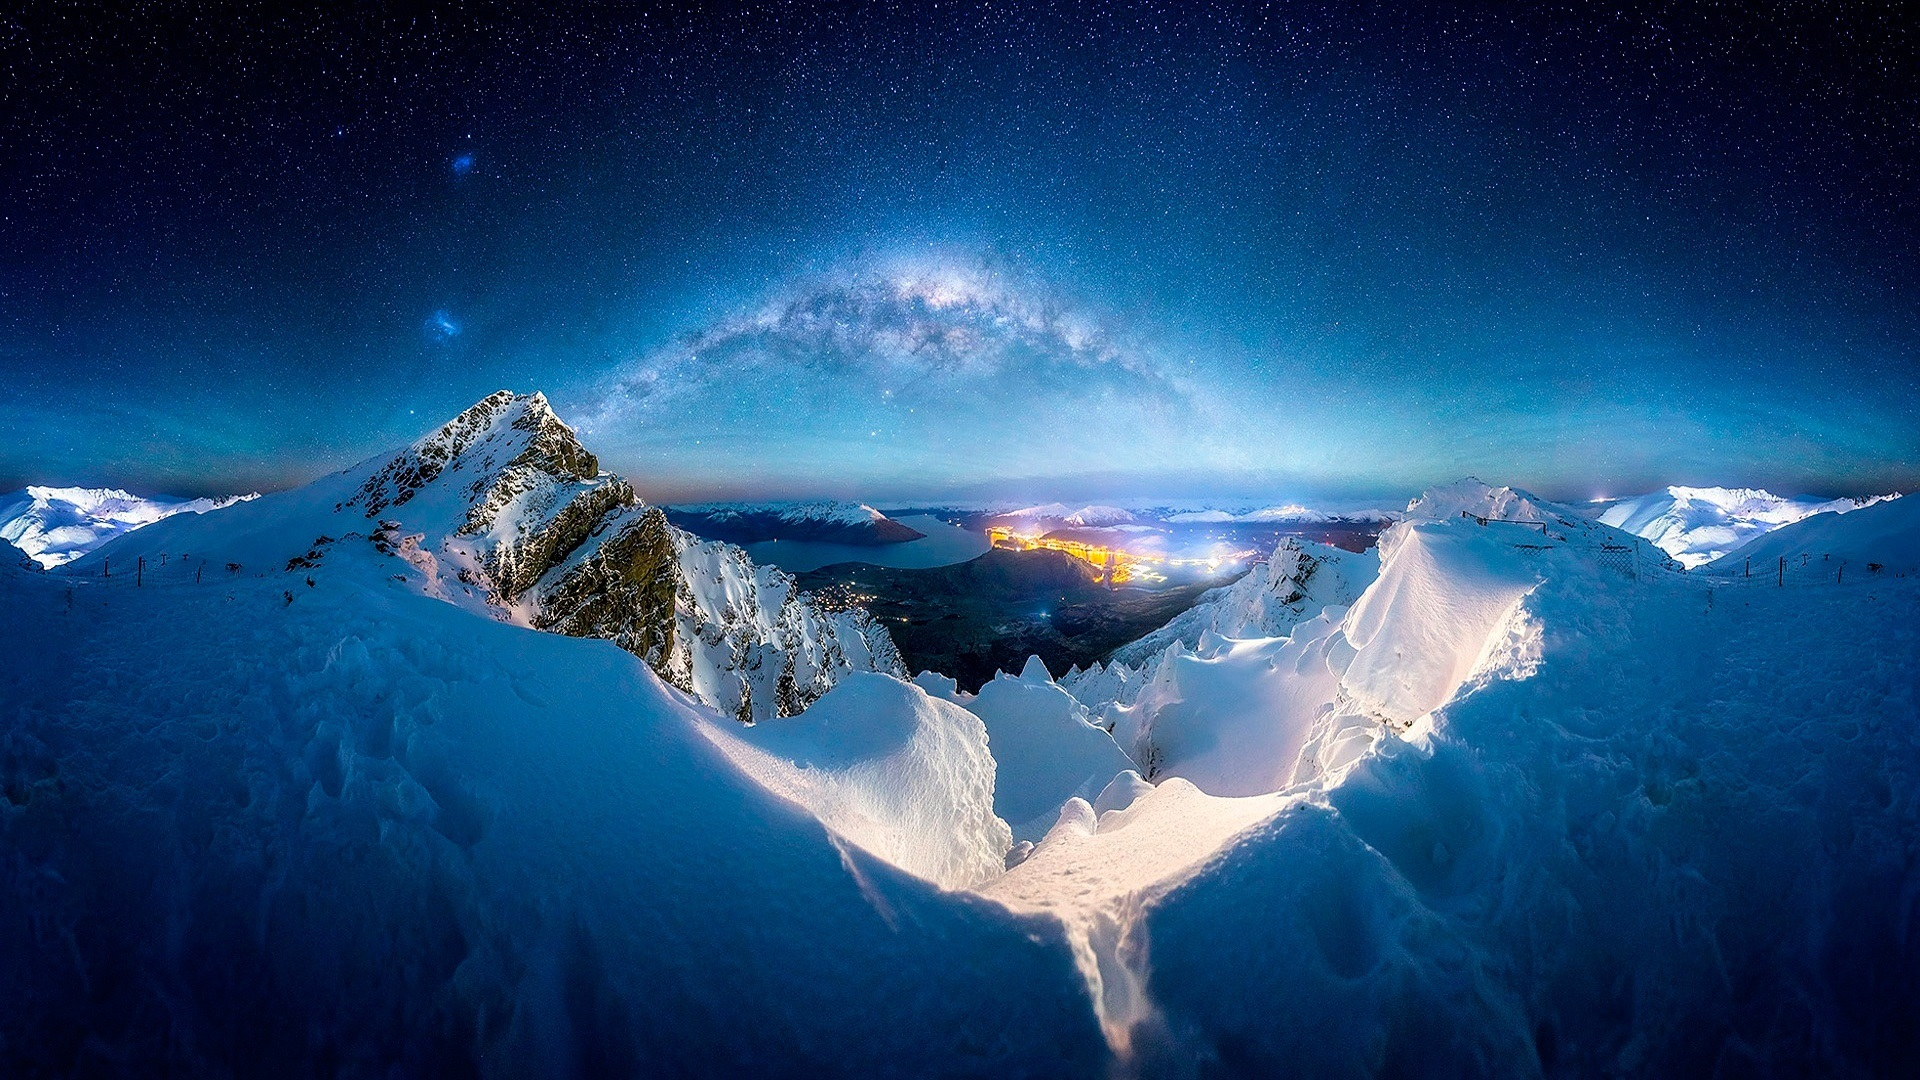 Winter Snow Mountains Night Milky Way Stars 640x960